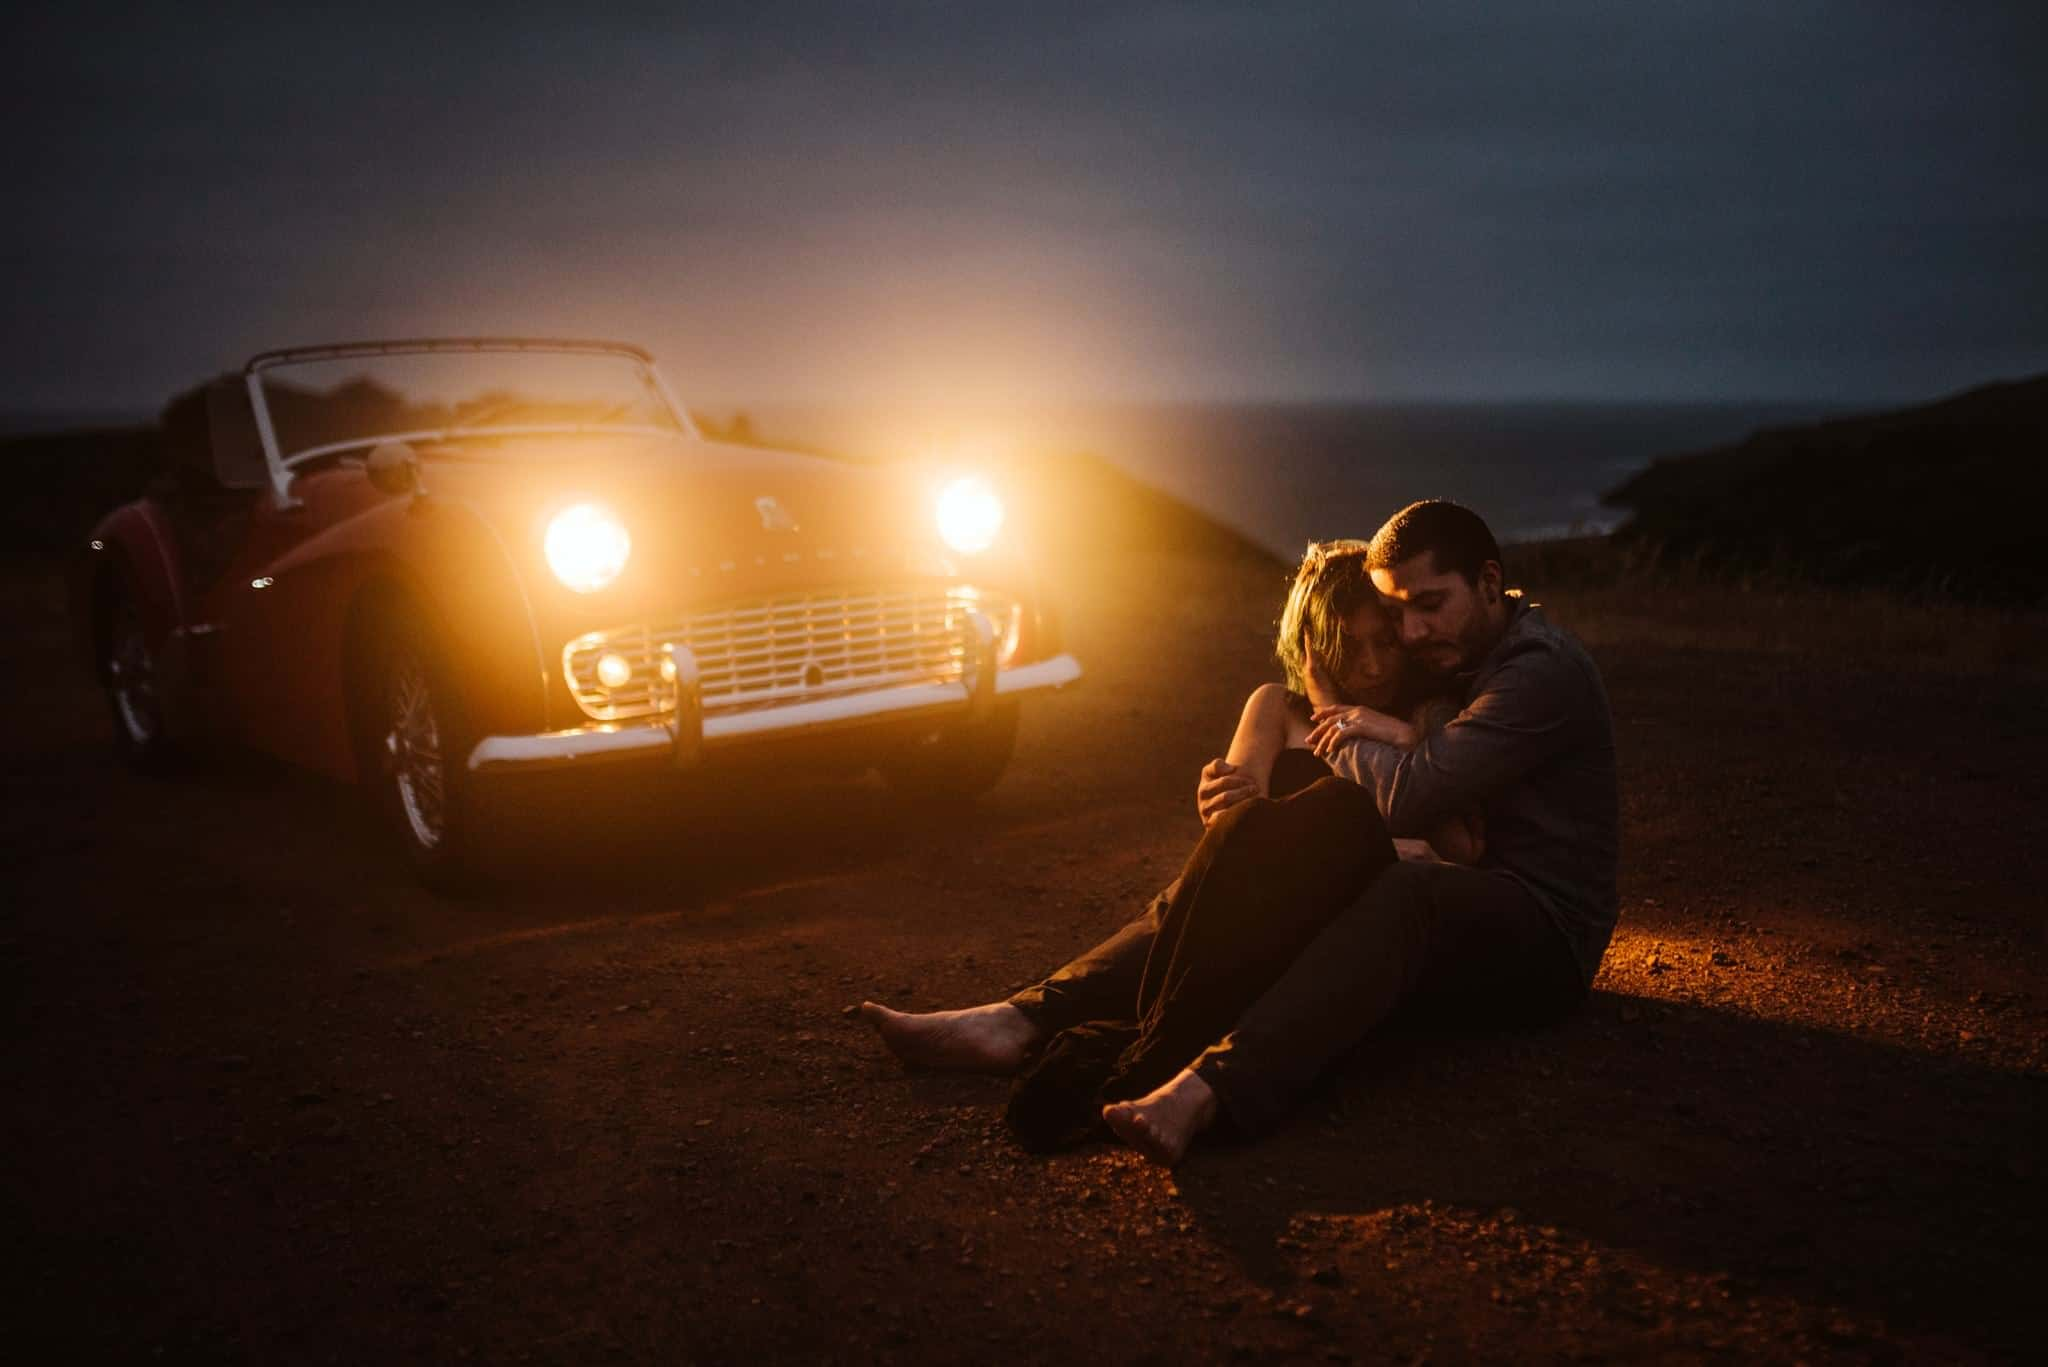 Two lovers sitting on the ground at night lit up by a car